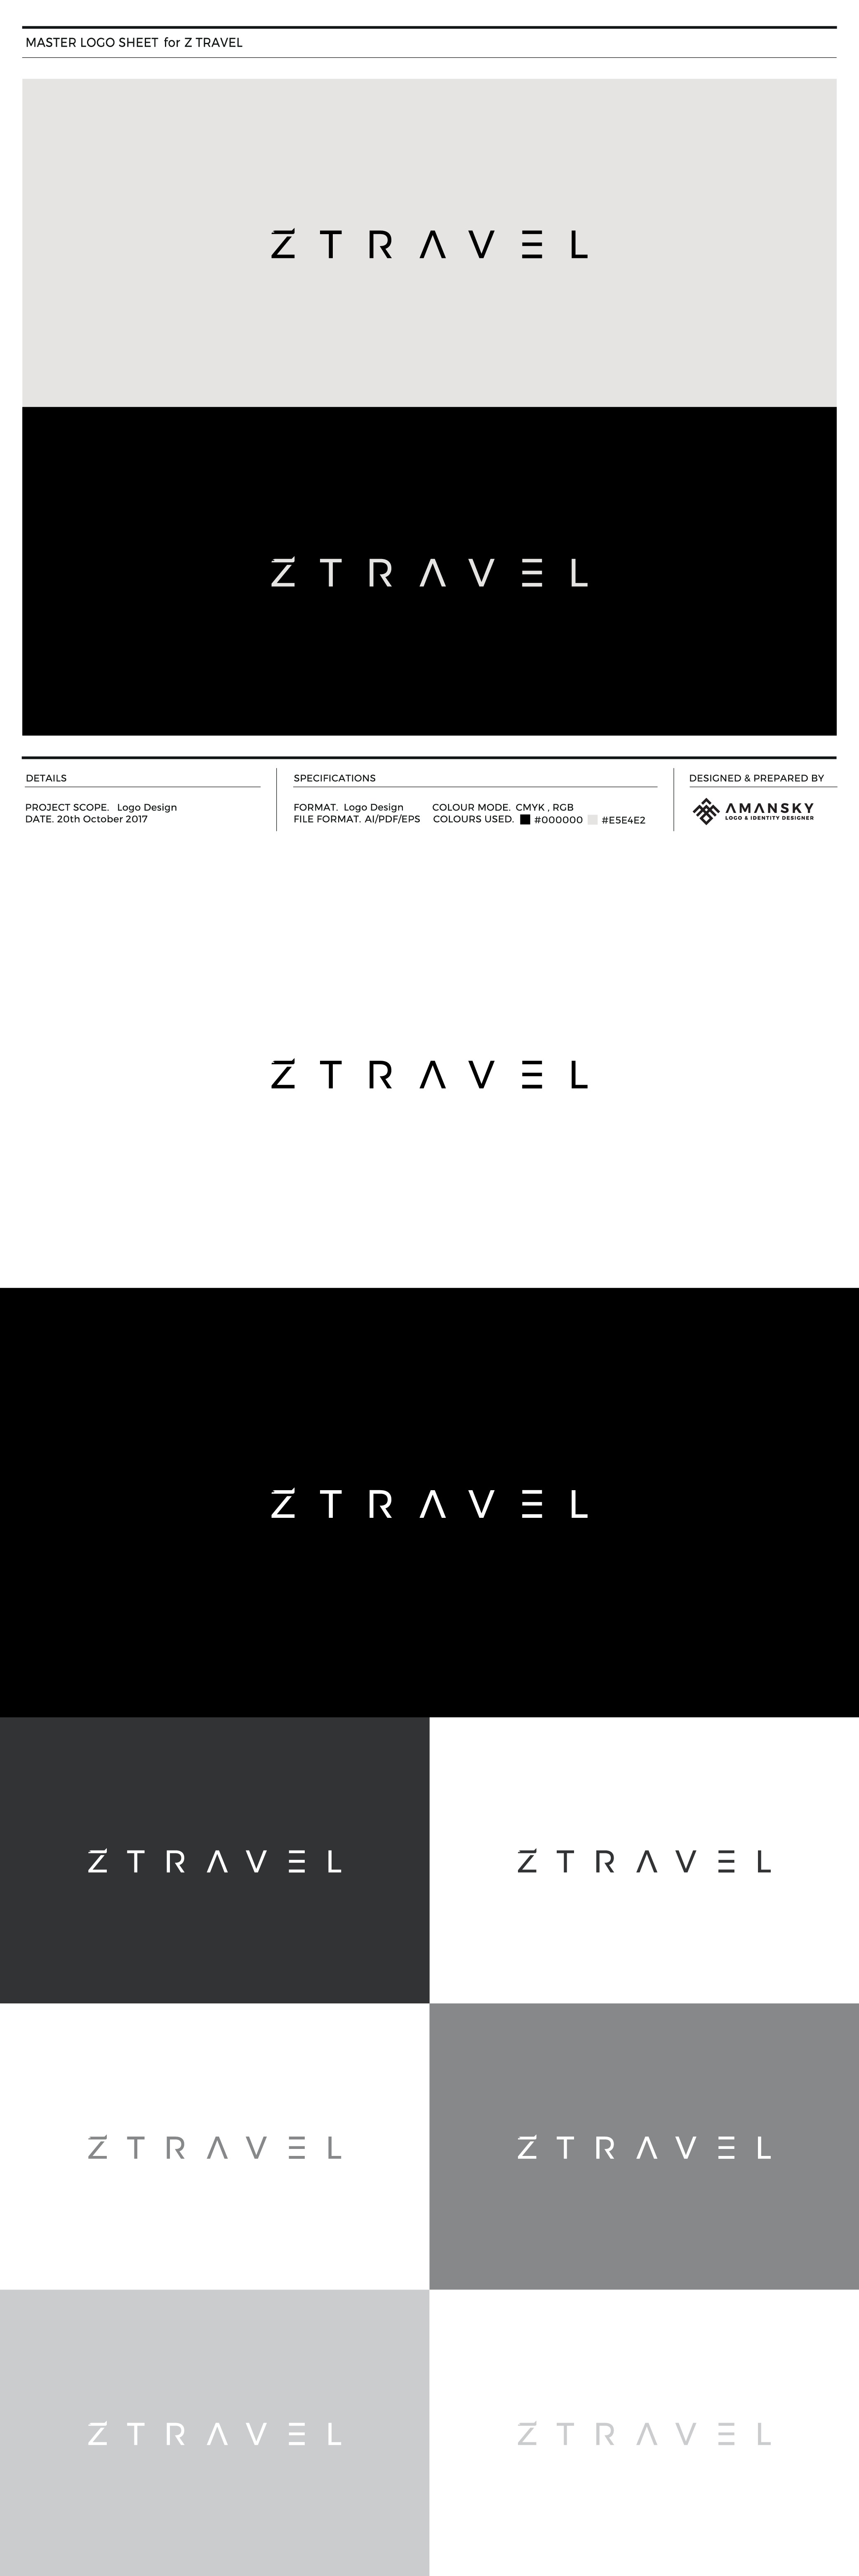 Travel agency looking for a logo as modern, luxurious & memorable as its clients!